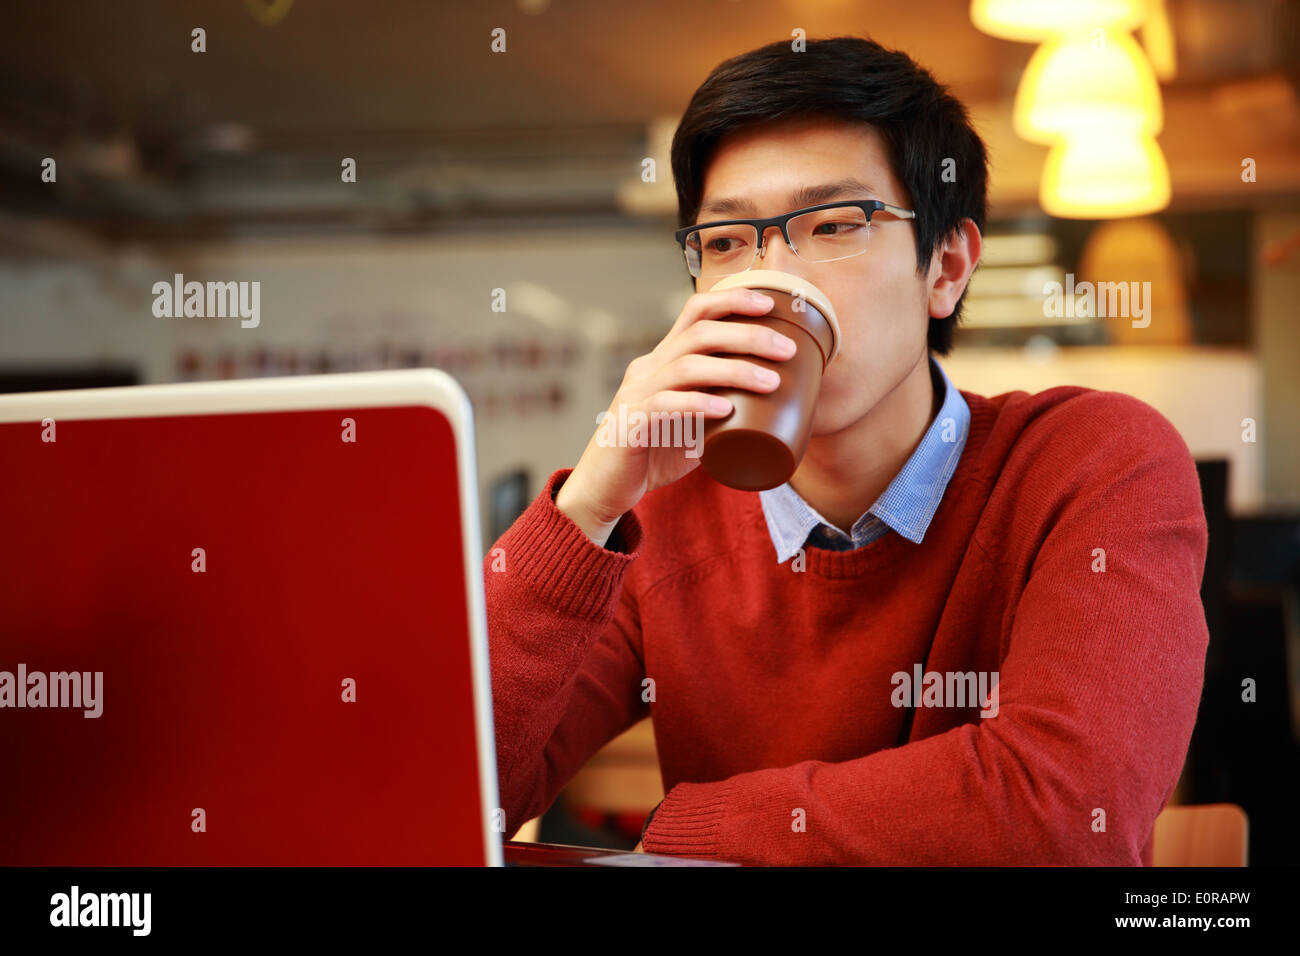 Young asian man working on laptop and drinking coffee - Stock Image